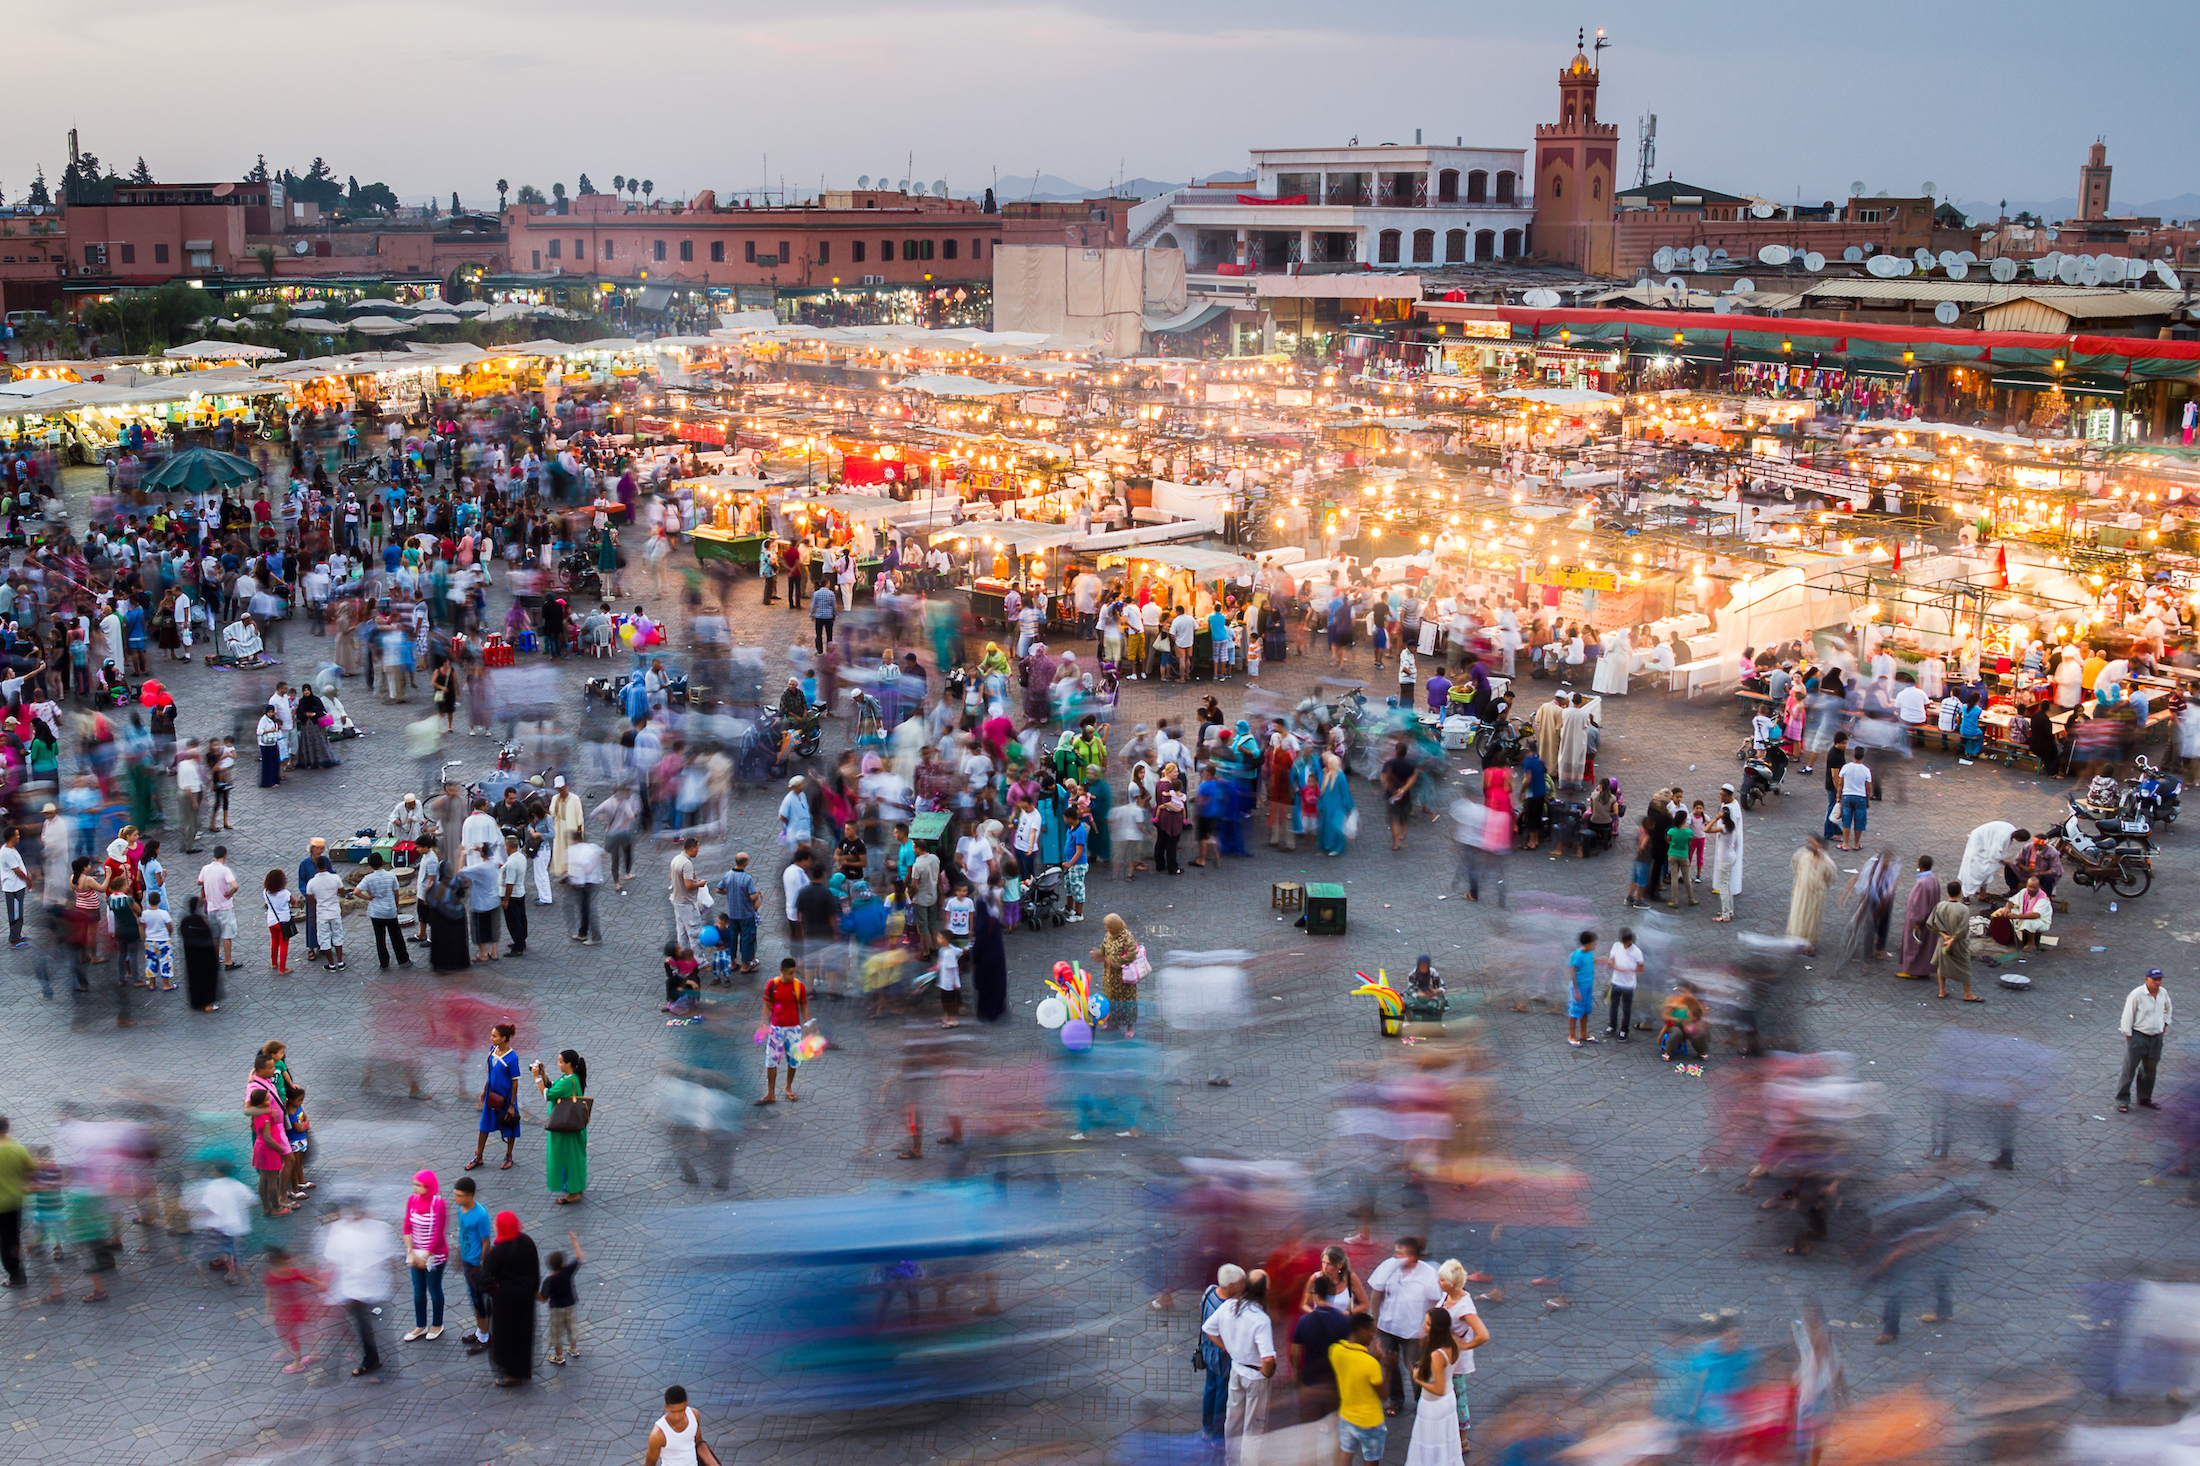 Aerial view of the main square in Marrakech, Morocco.